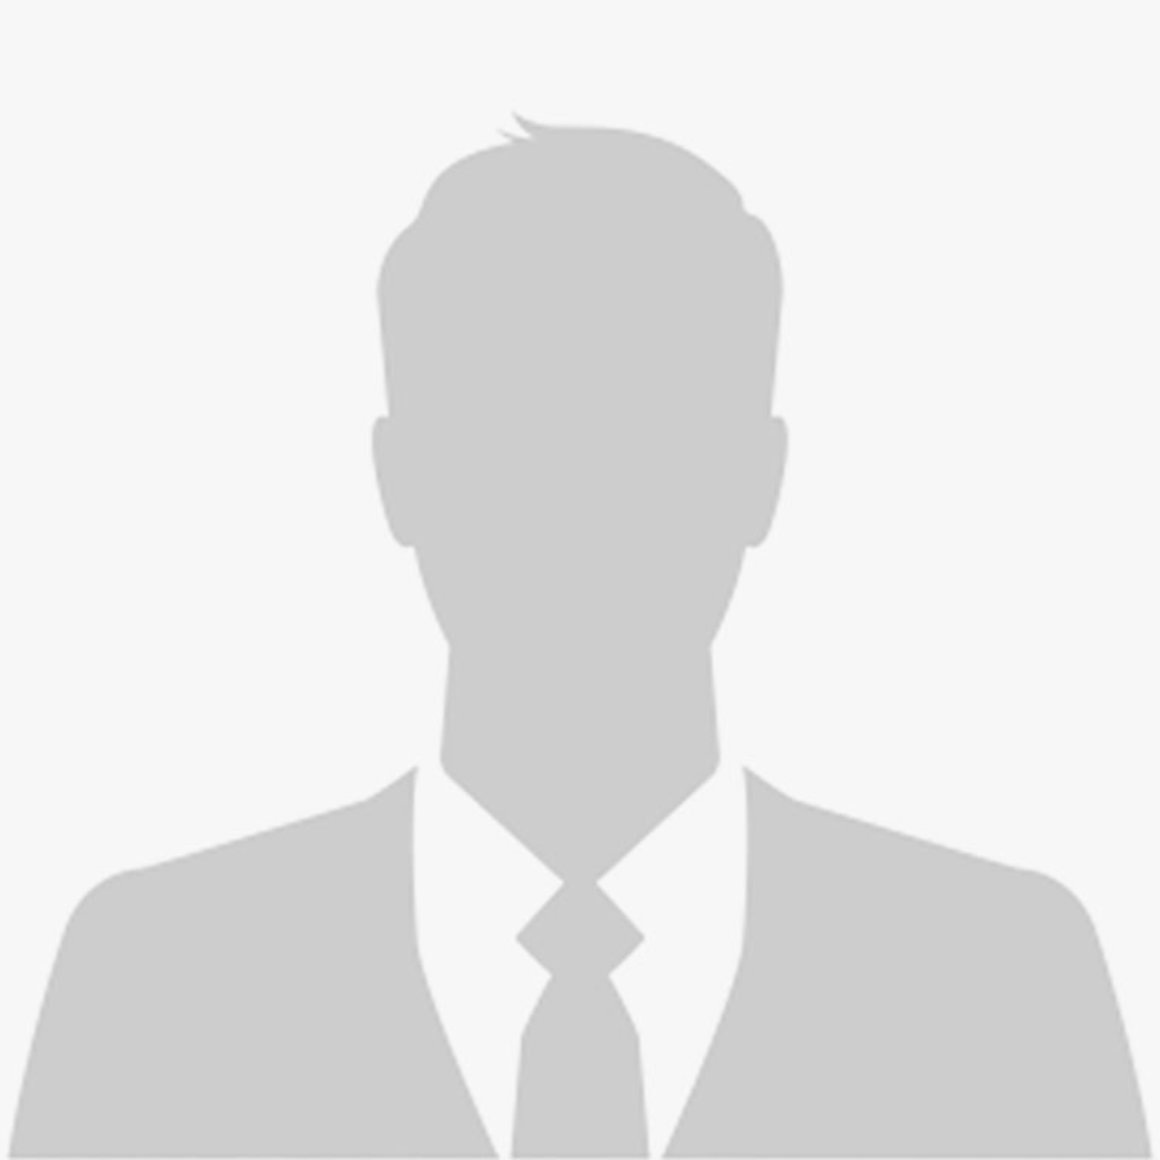 male-avatar-placeholder